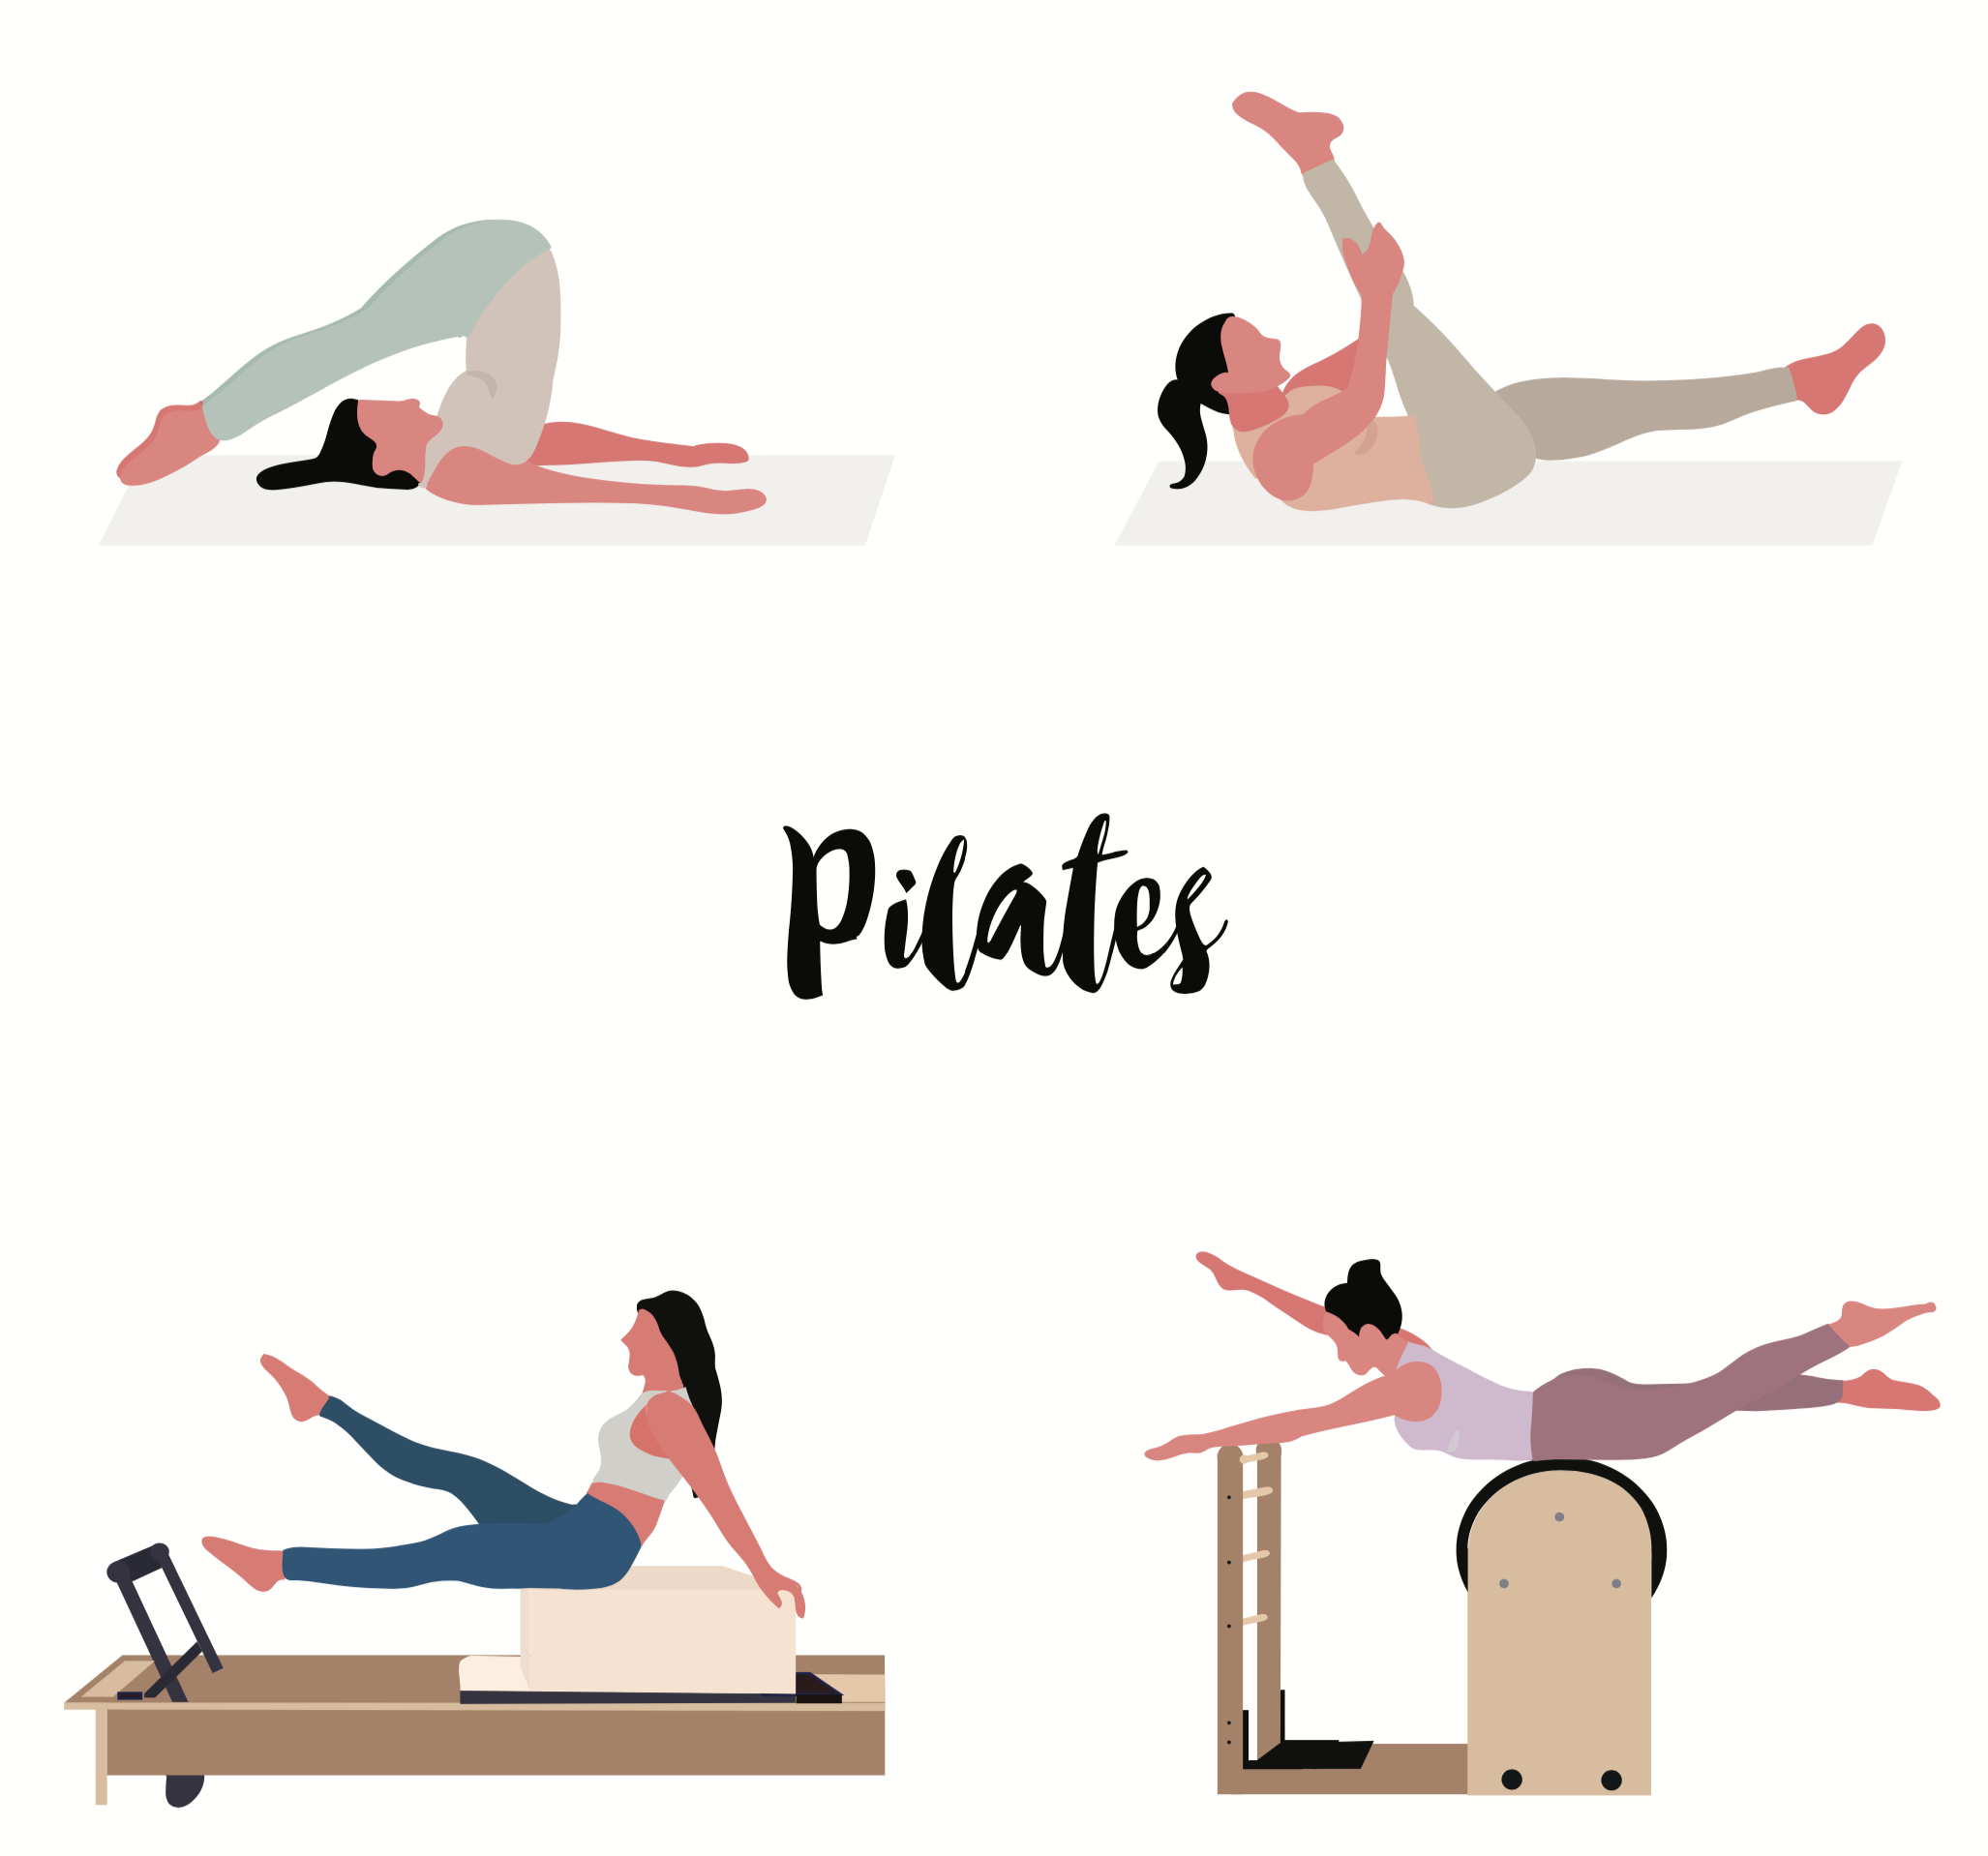 How often do you have to do Pilates?